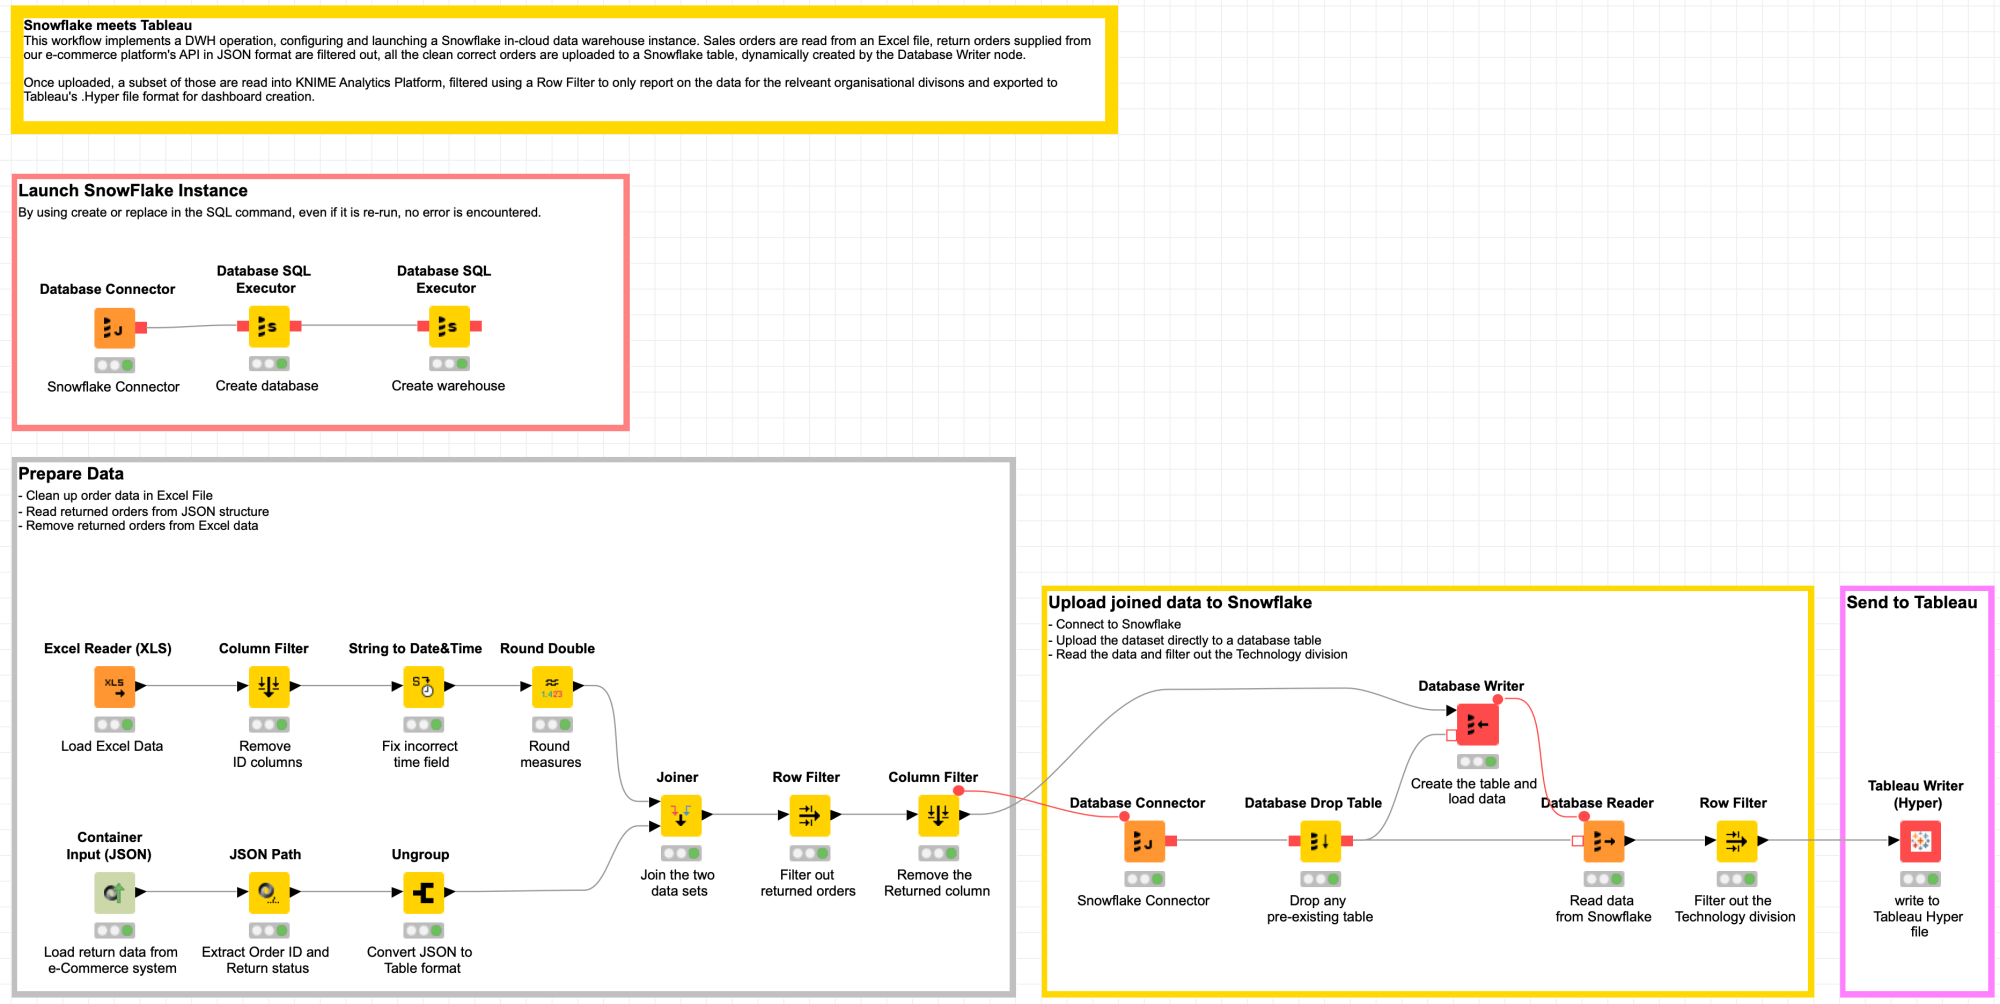 hight resolution of knime workflow snowflake meets tableau